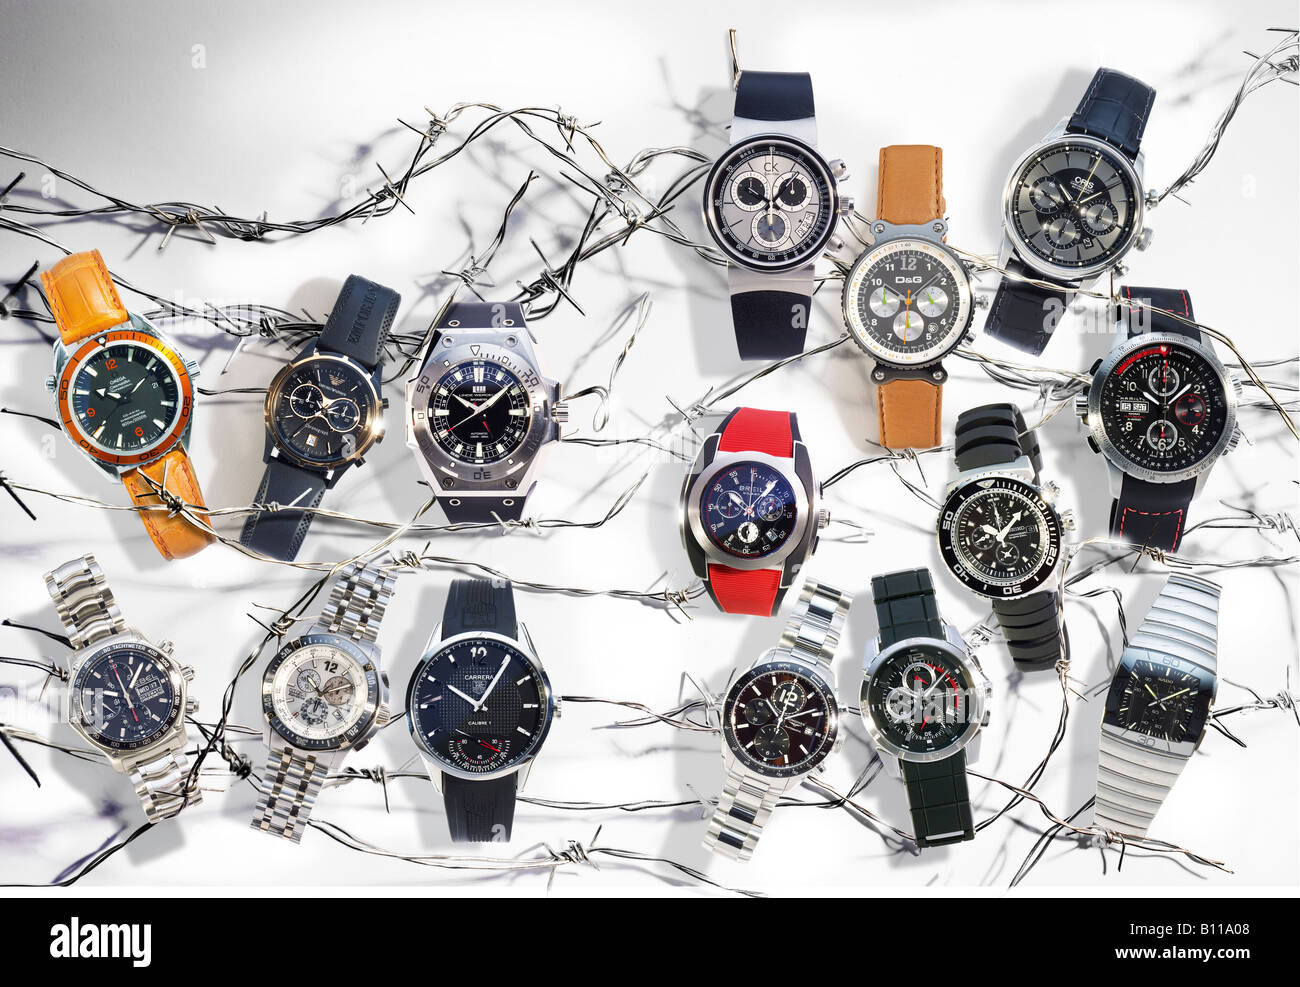 Various wrist watches - Stock Image